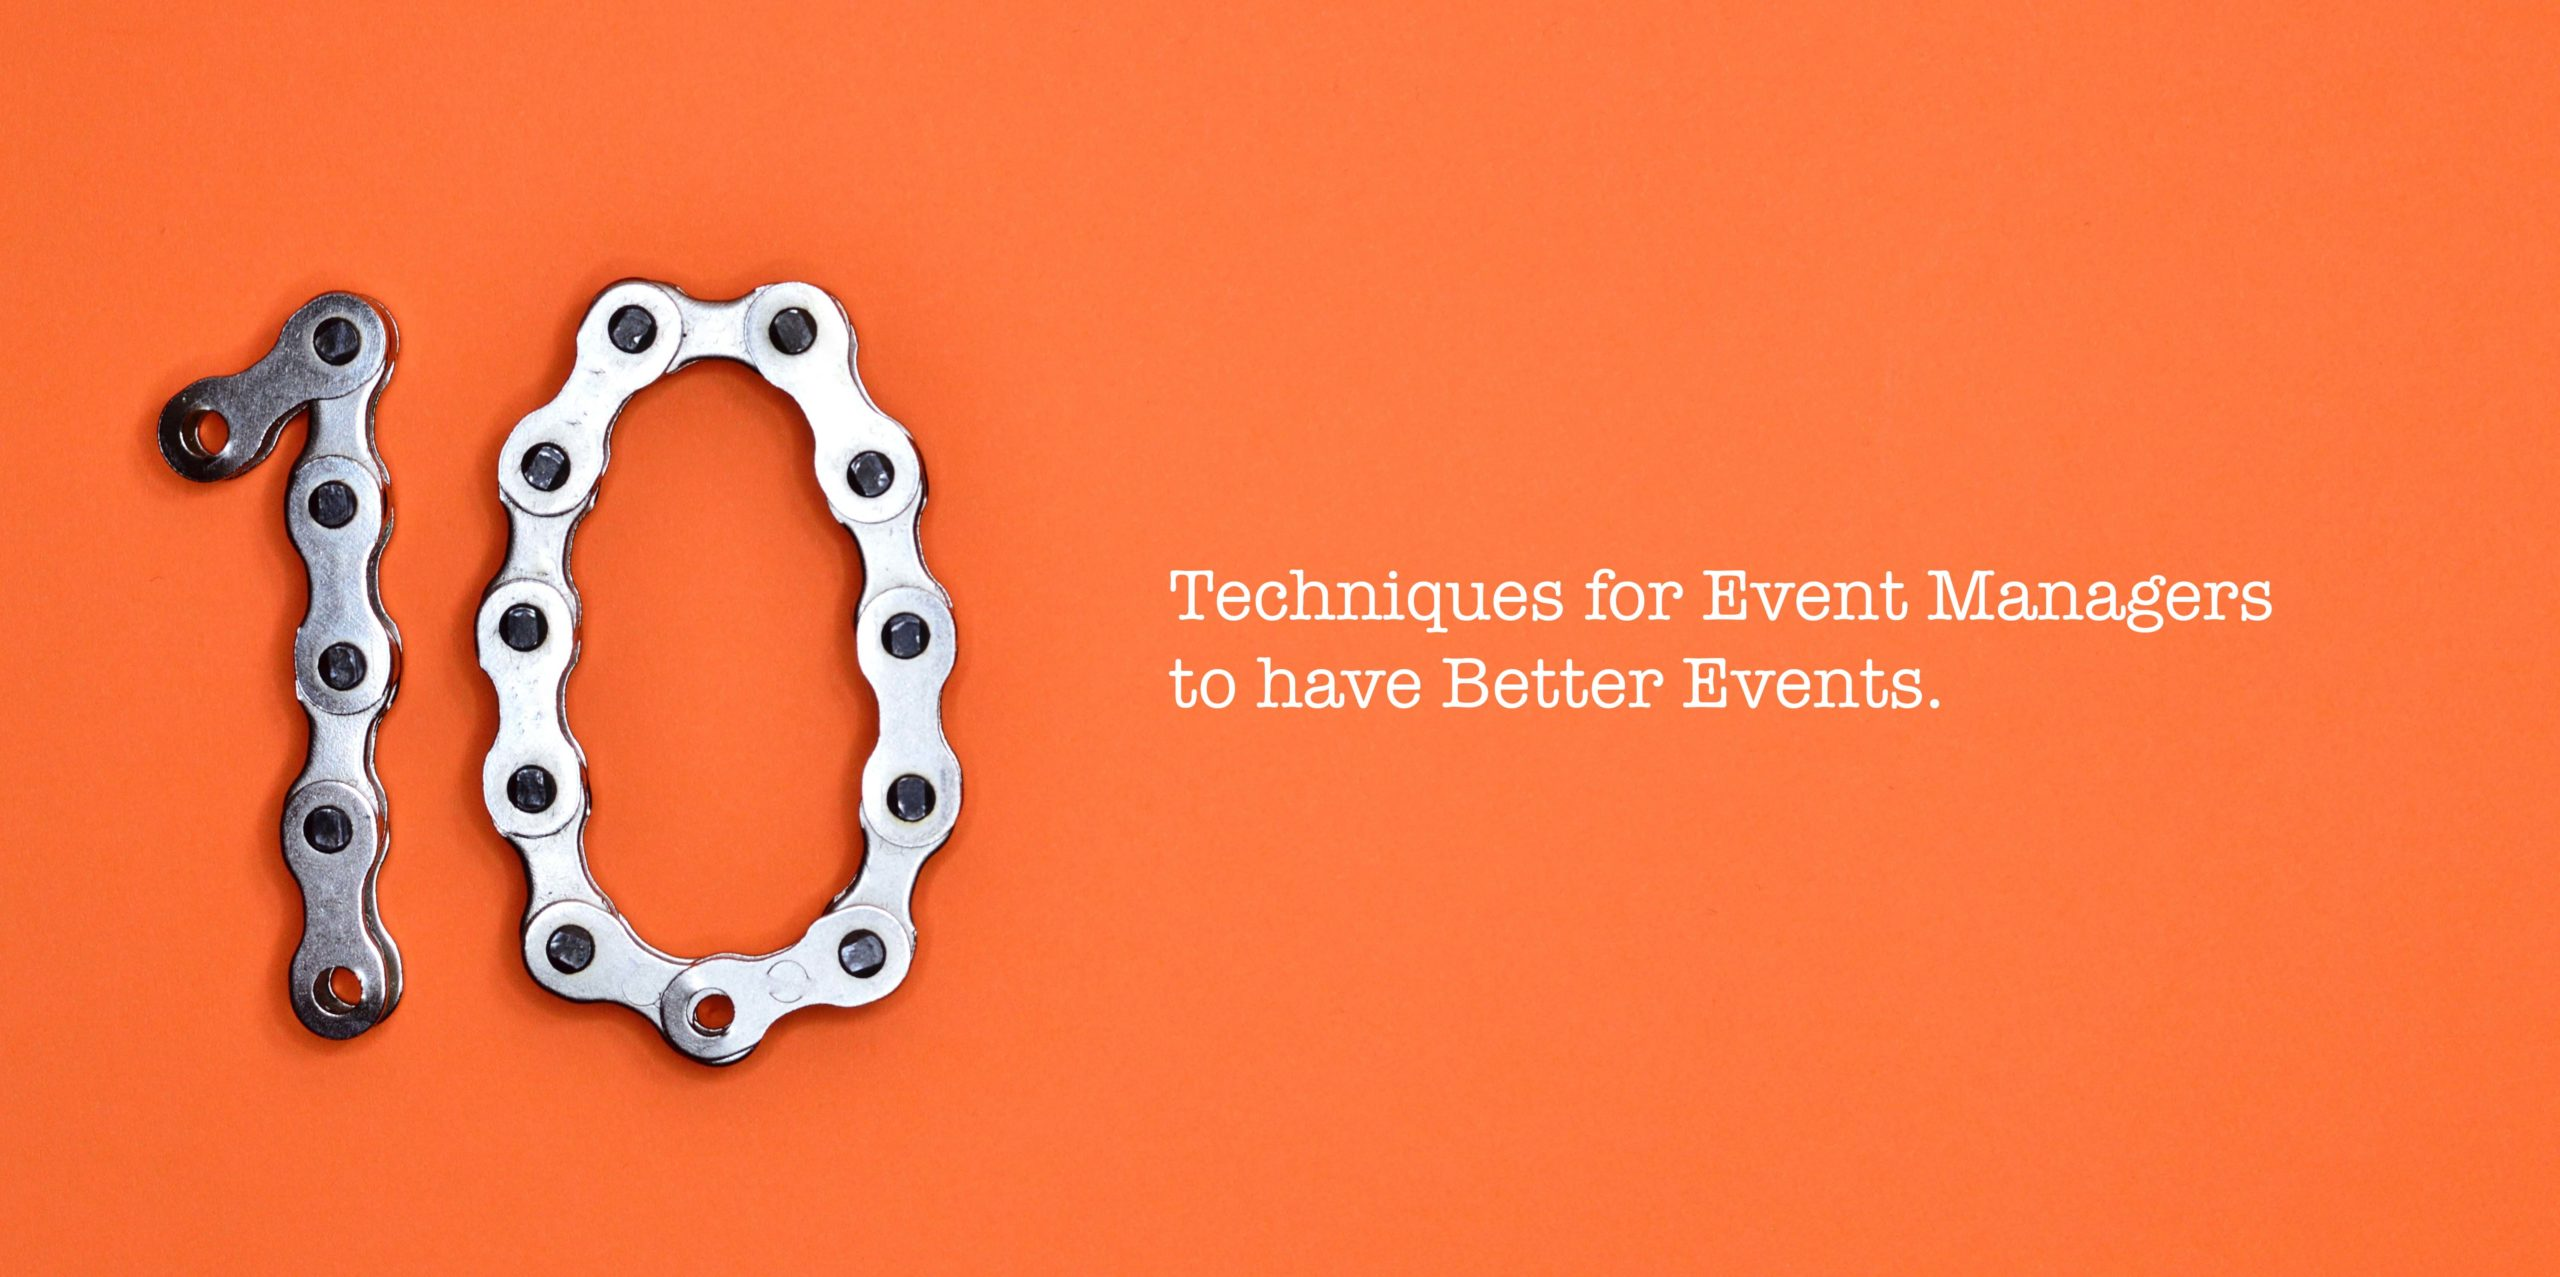 10 Techniques for Event Managers to have Better Events.